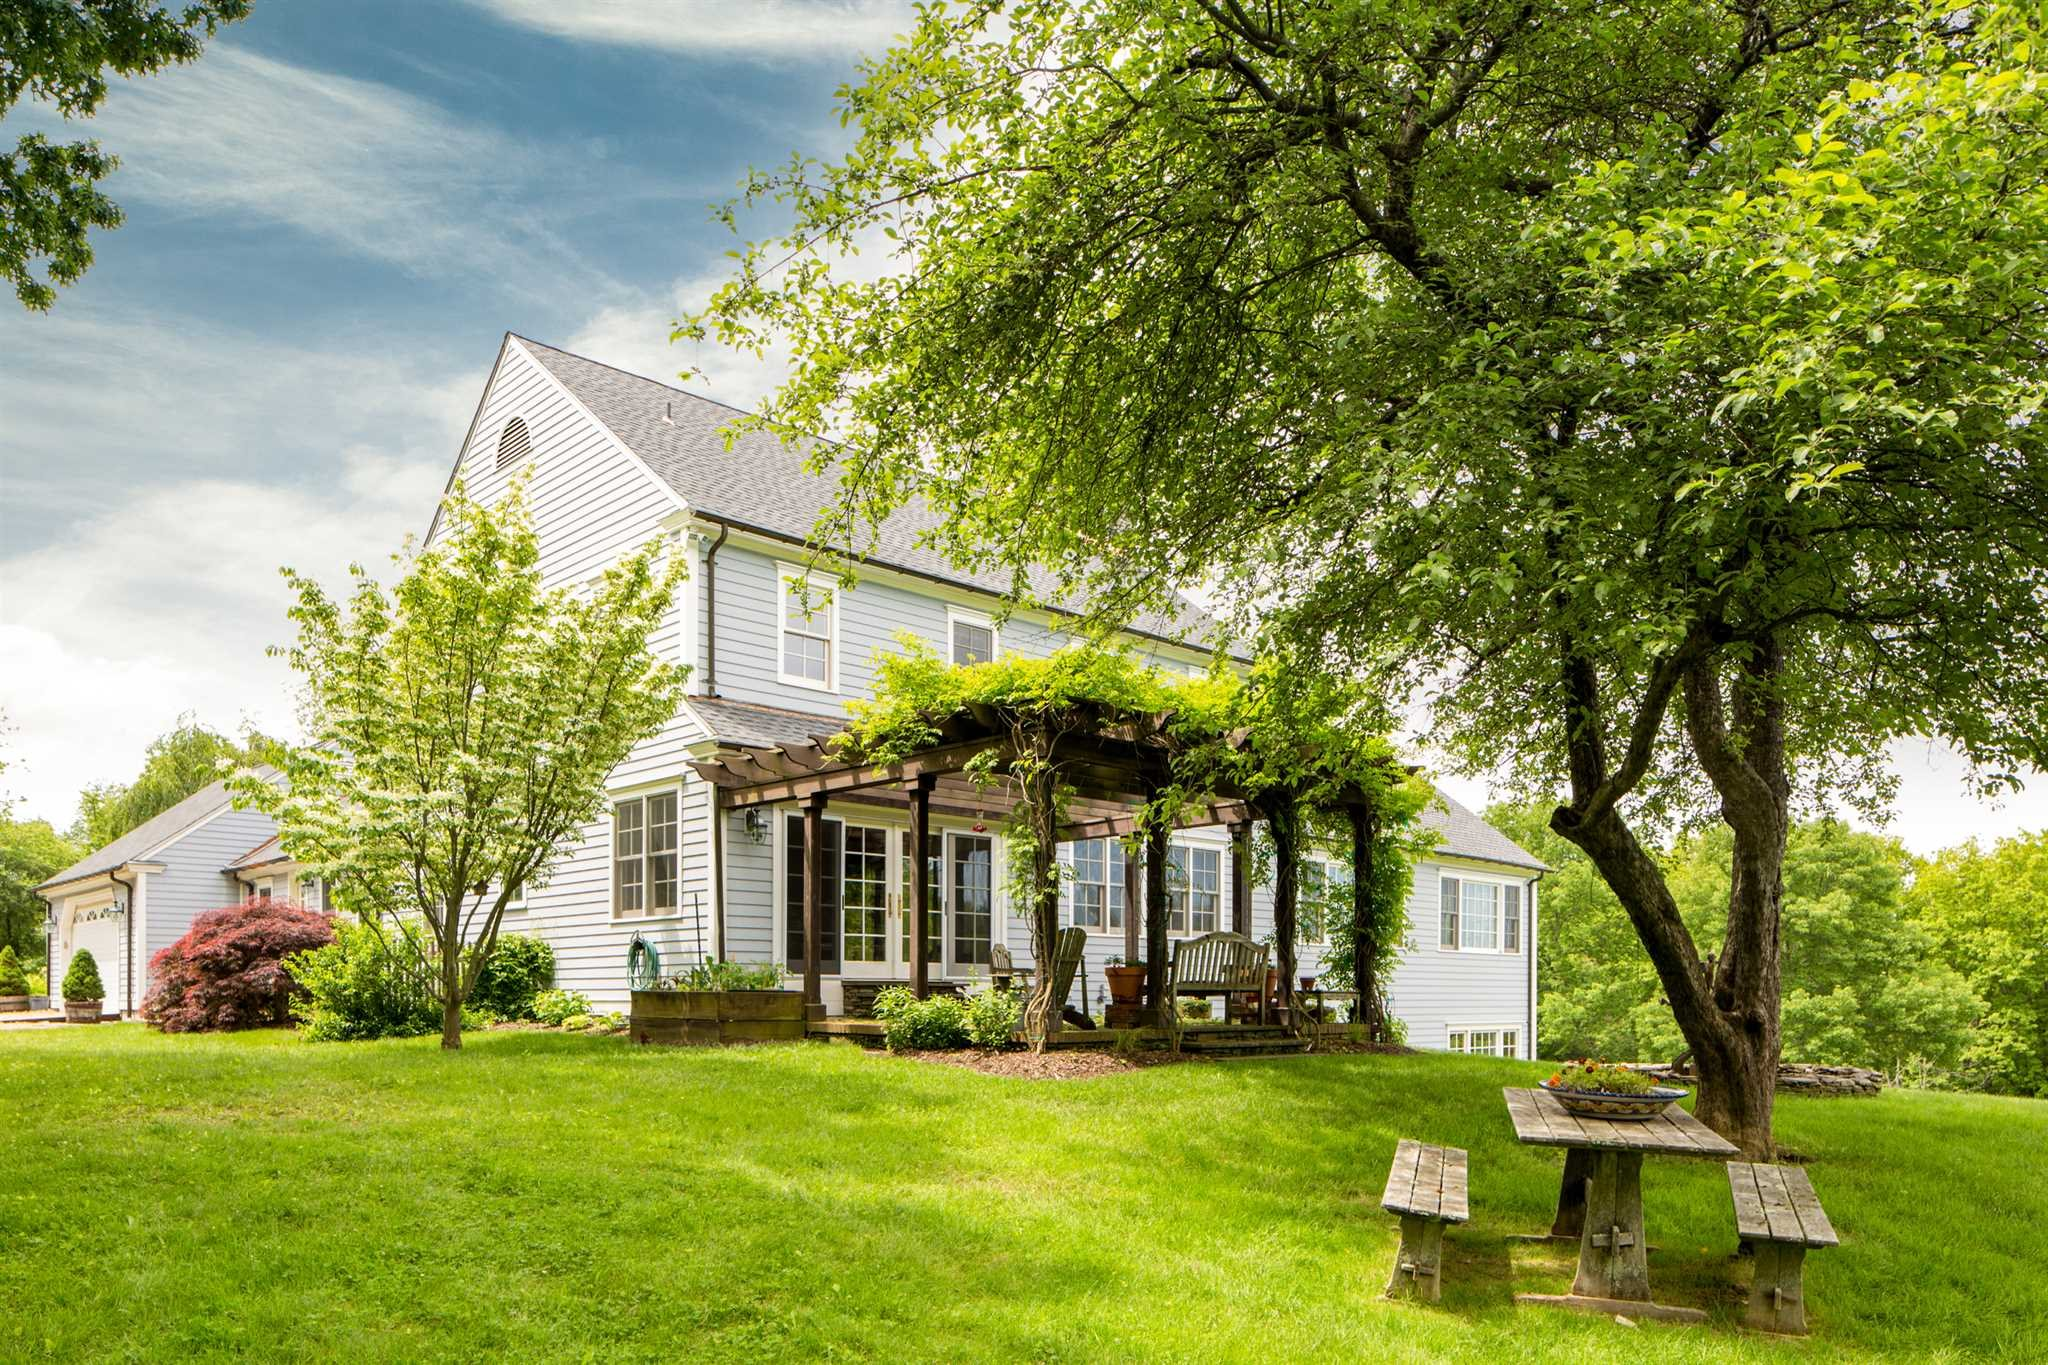 Additional photo for property listing at 16 LUDLOW WOODS ROAD 16 LUDLOW WOODS ROAD Stanfordville, New York 12581 United States